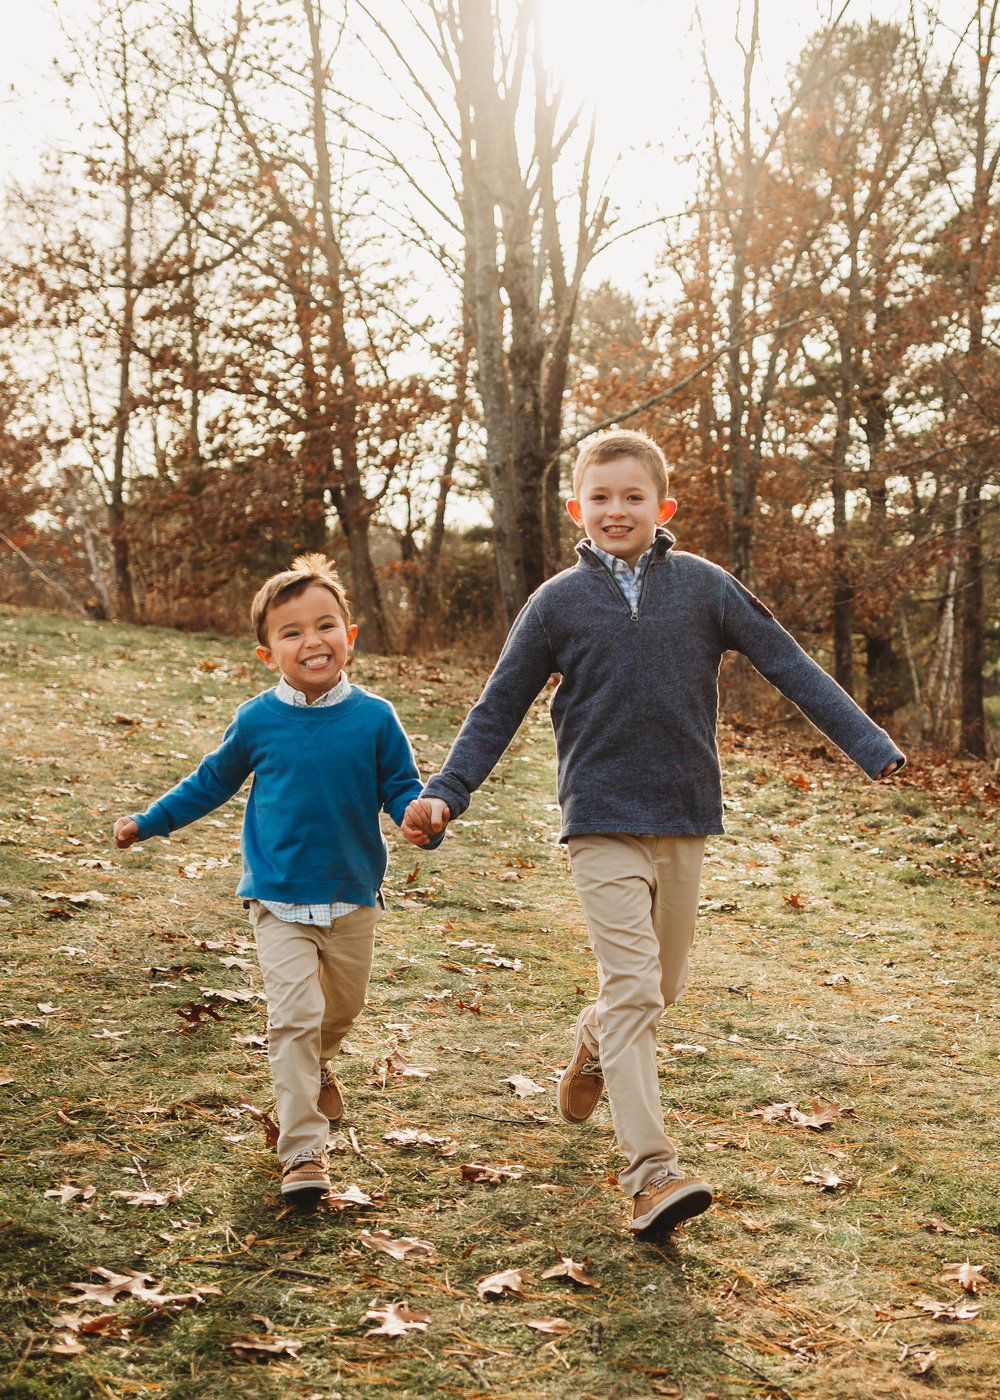 brothers-running-lifestyle-extended-family-session-boston-family-photographer.jpg